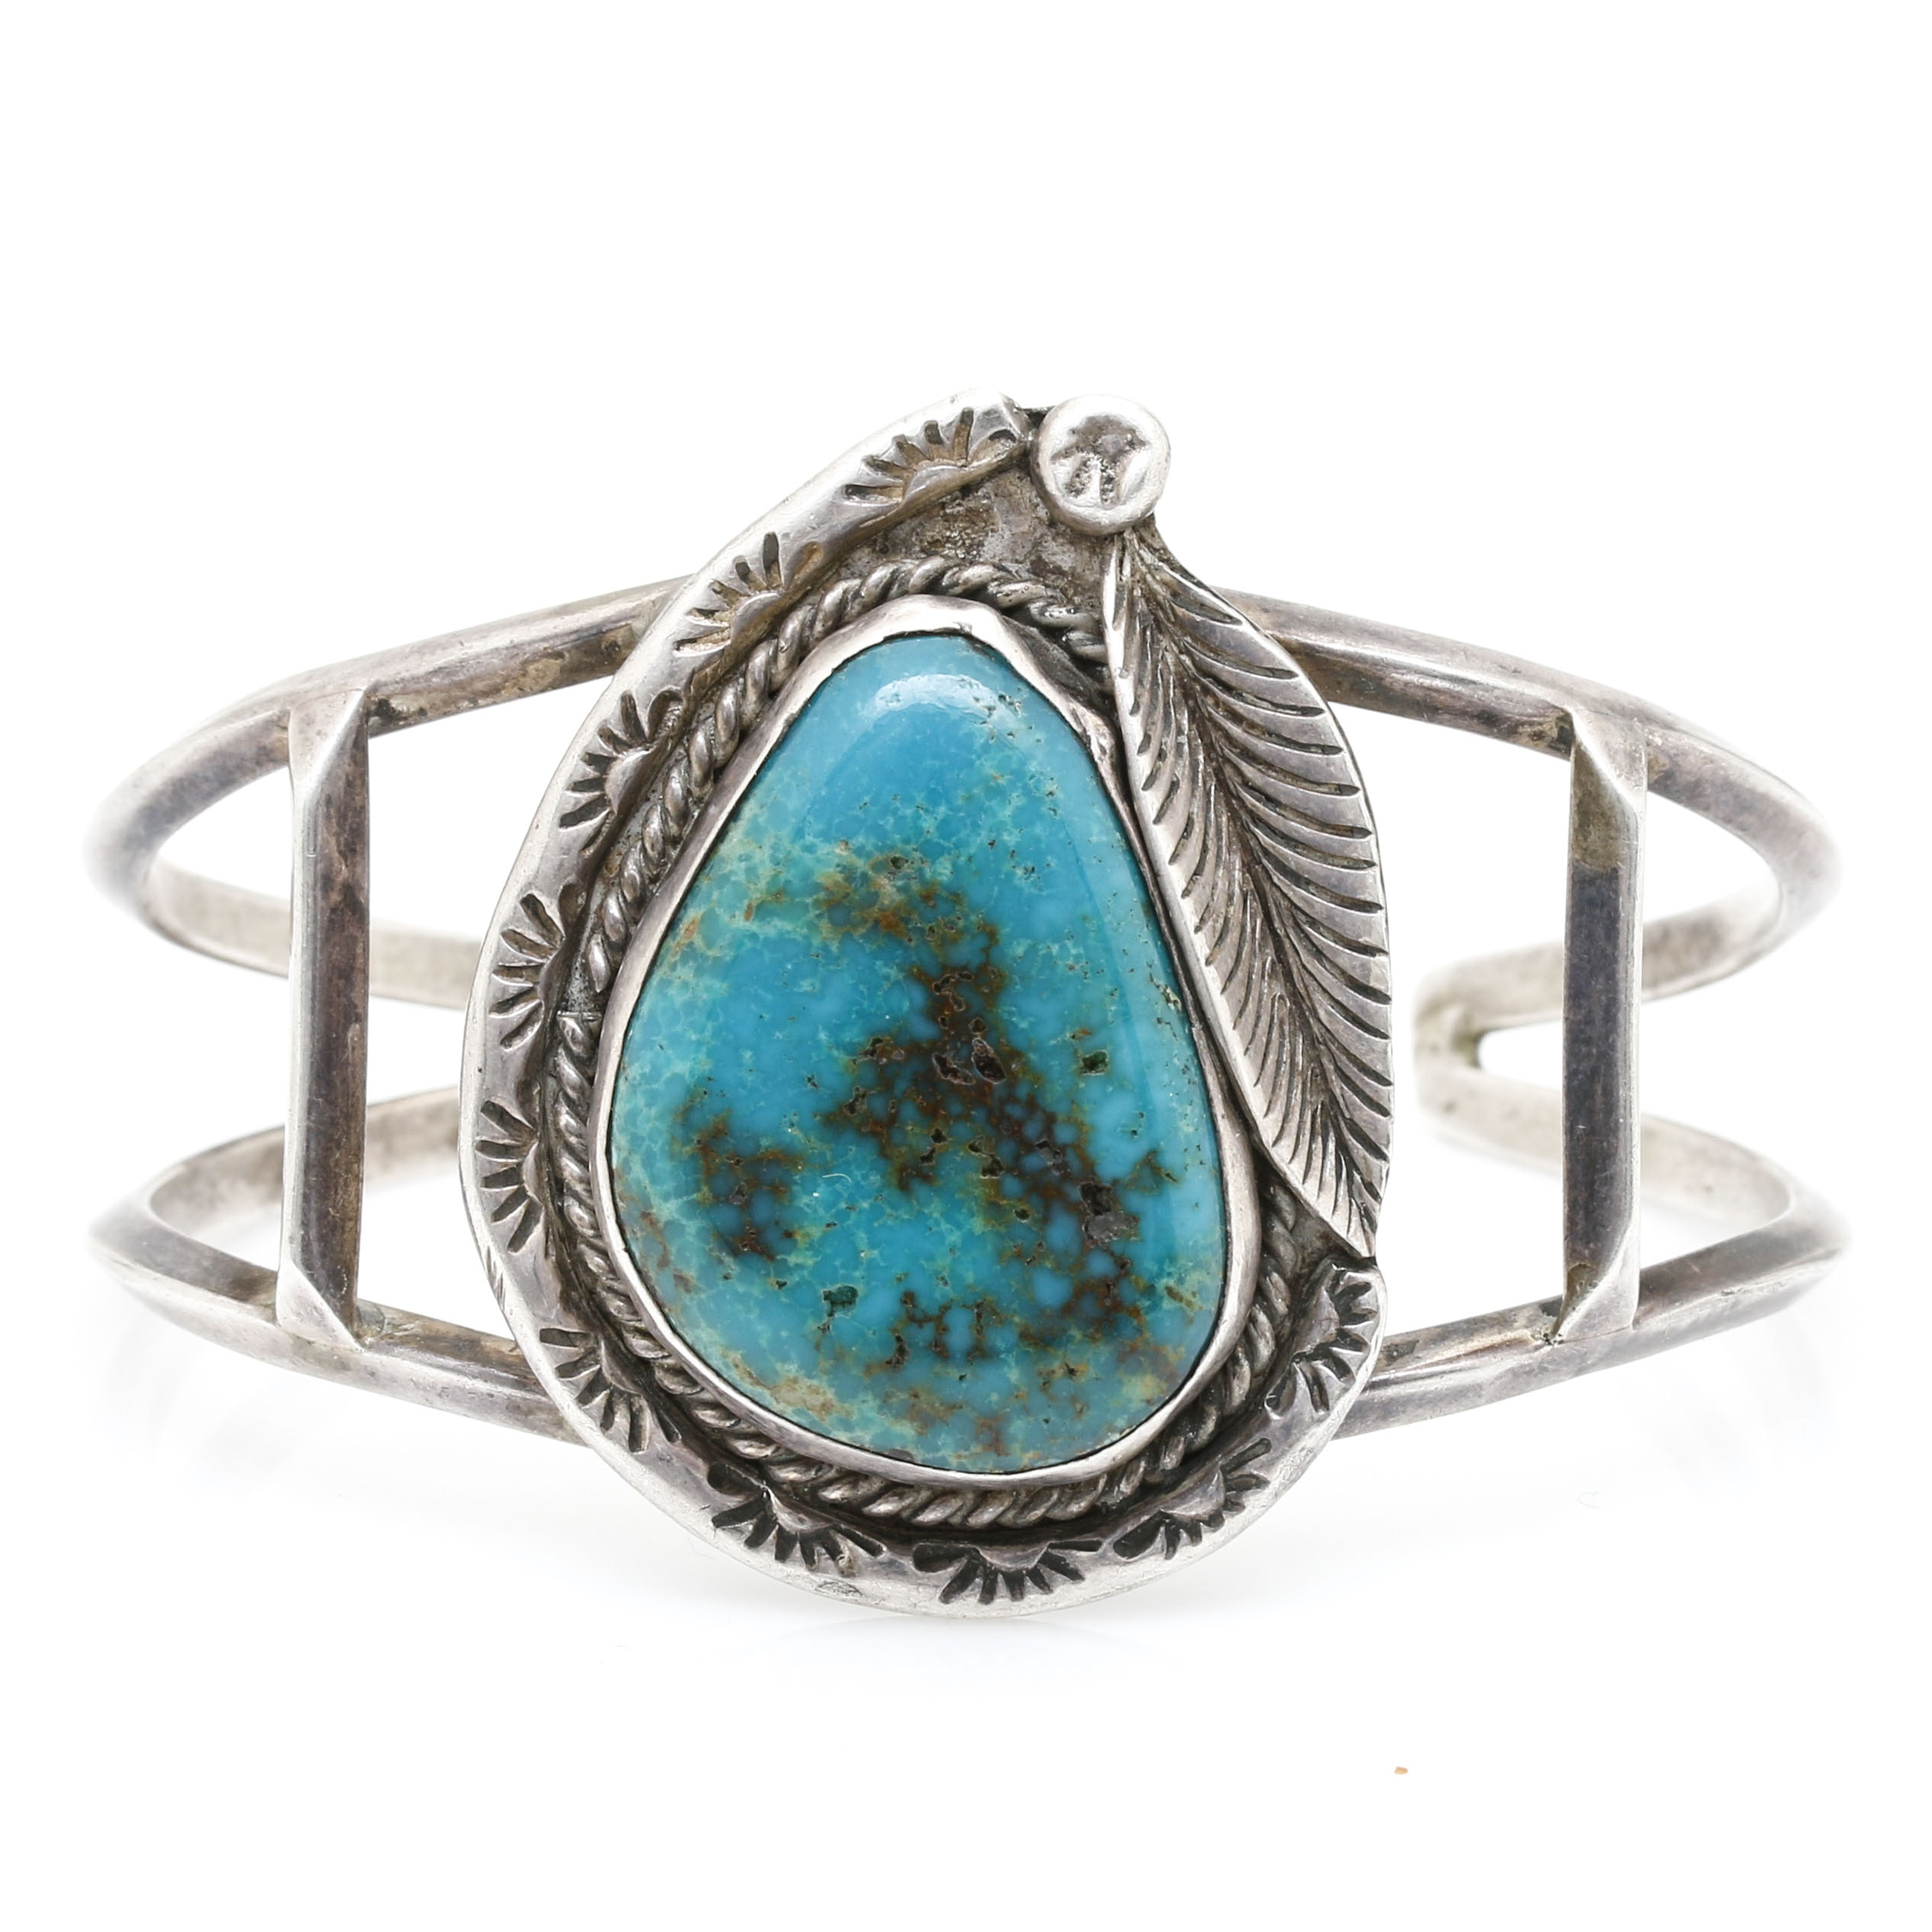 Harry R. Yazzie Navajo Sterling Silver Turquoise Appliqué Cuff